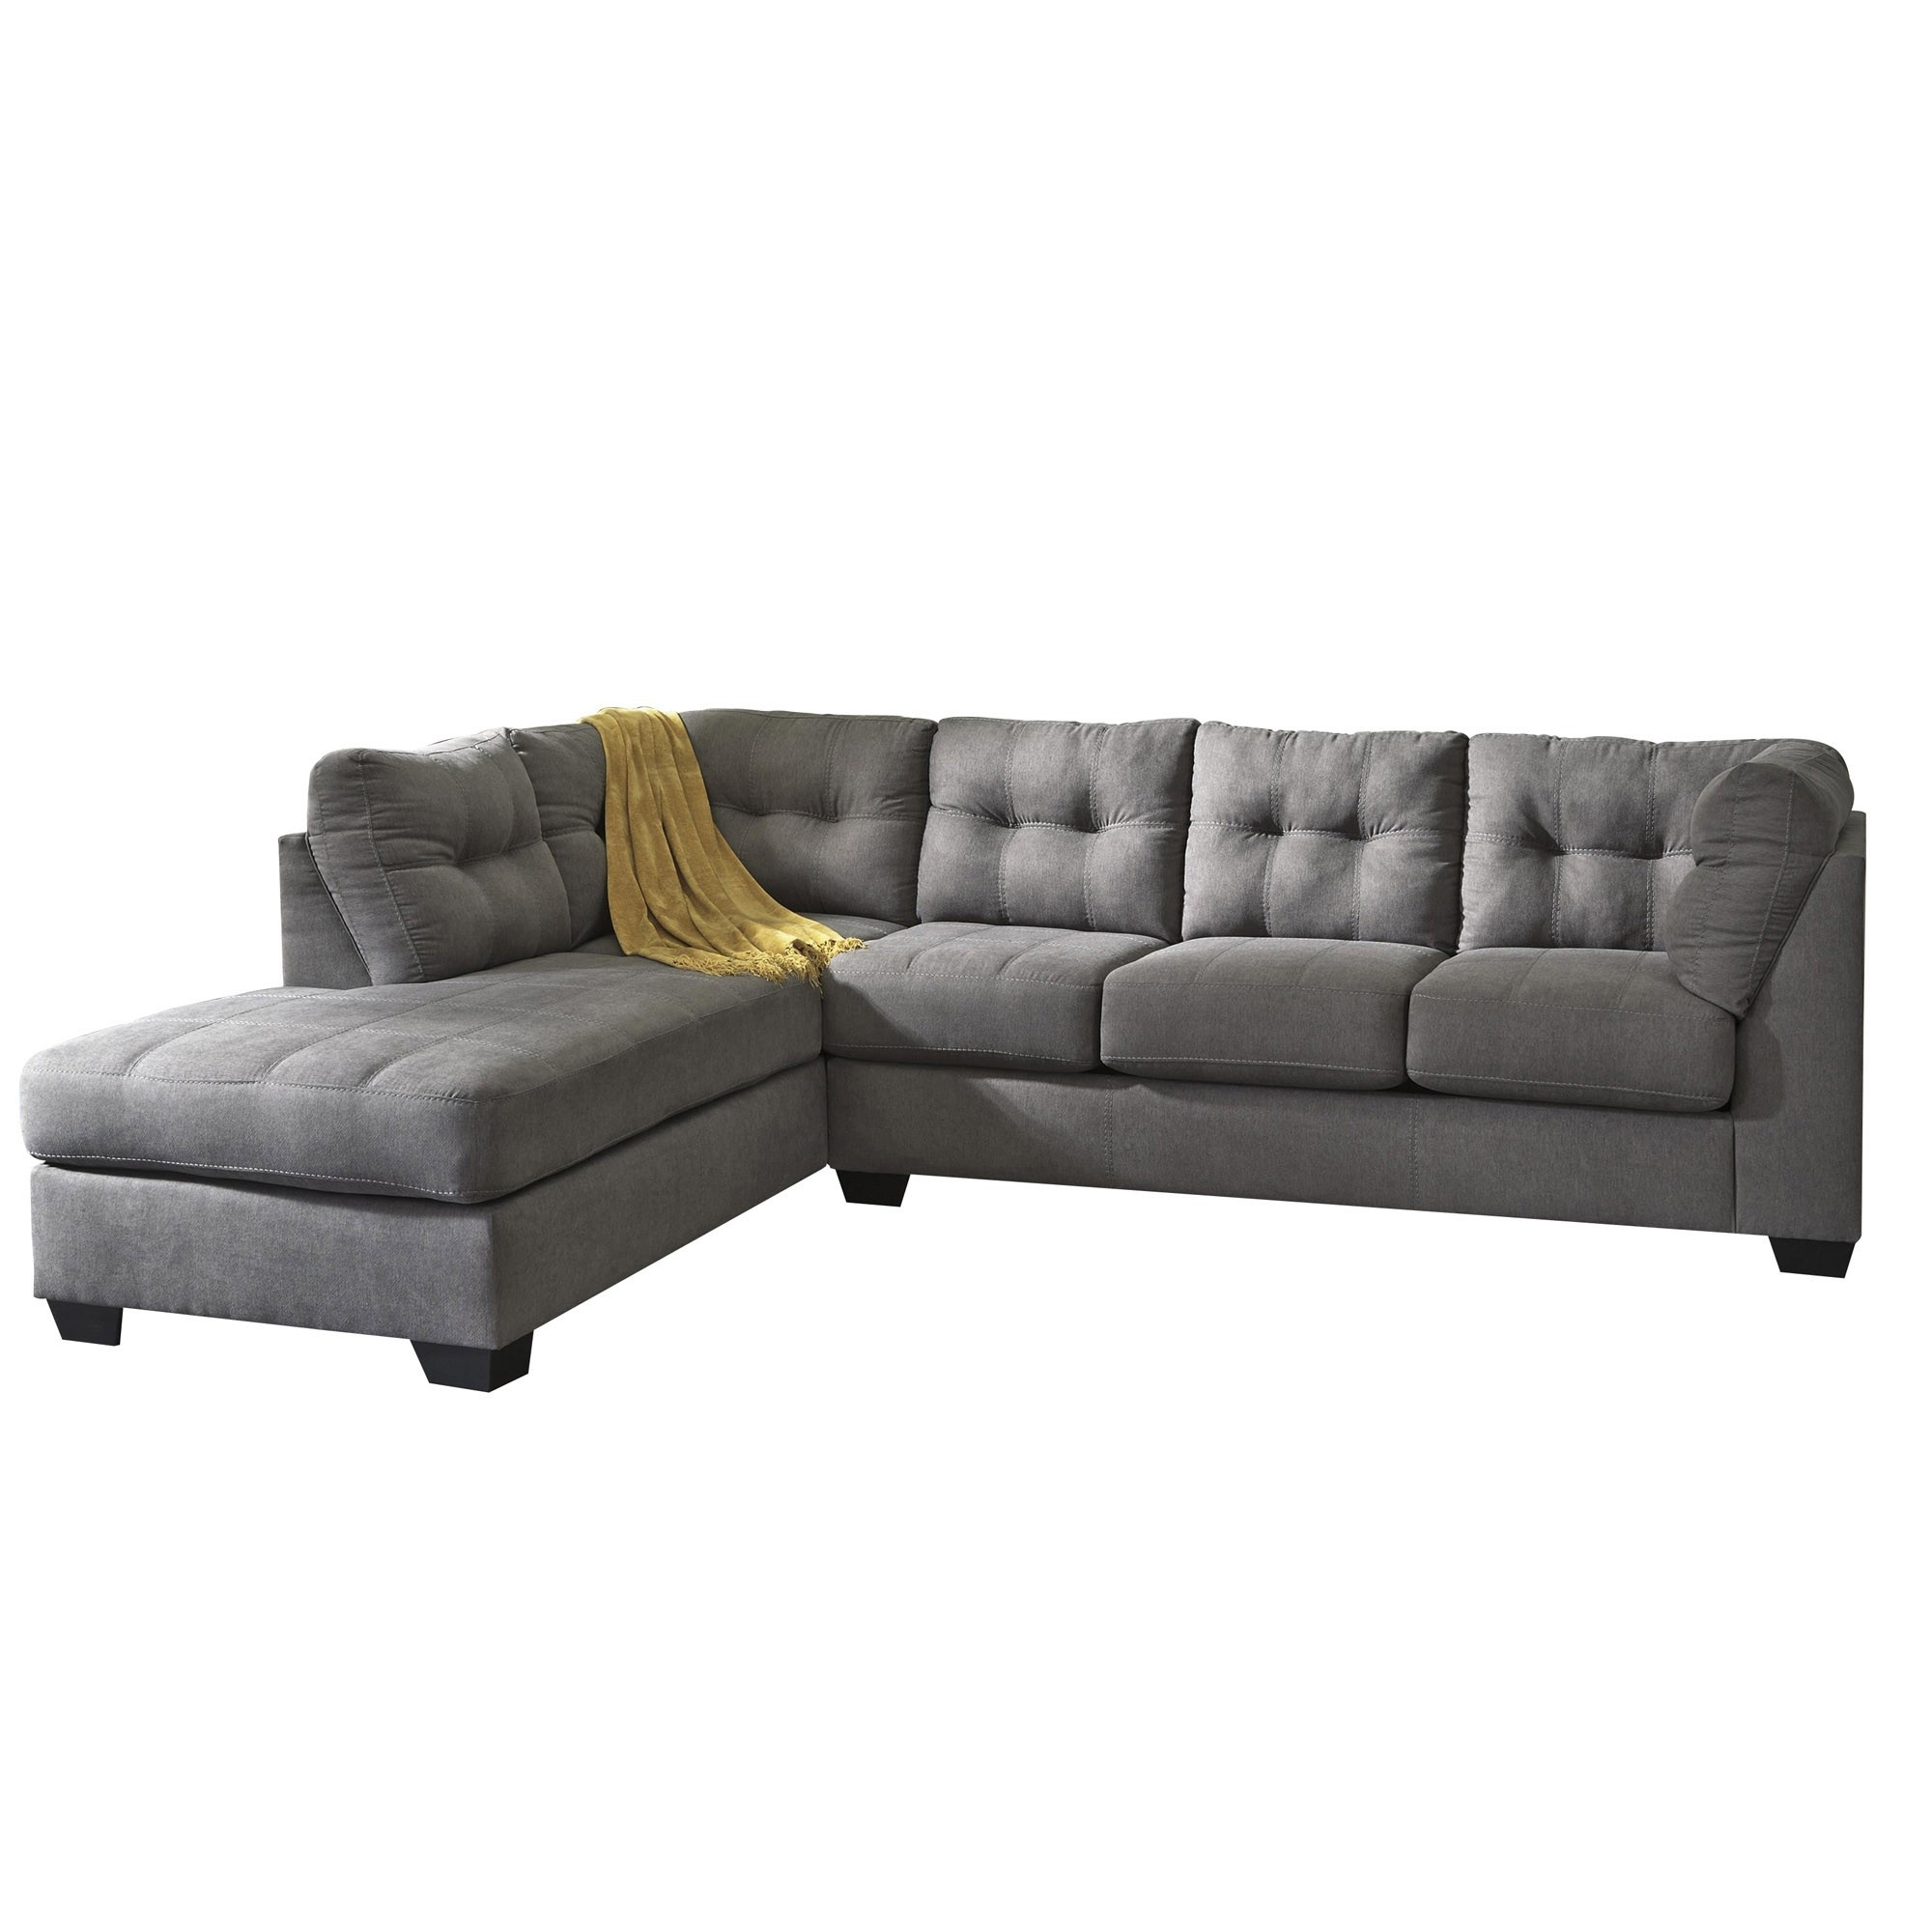 Maier 2 Piece Sectional | Tepperman's Intended For Teppermans Sectional Sofas (View 6 of 10)